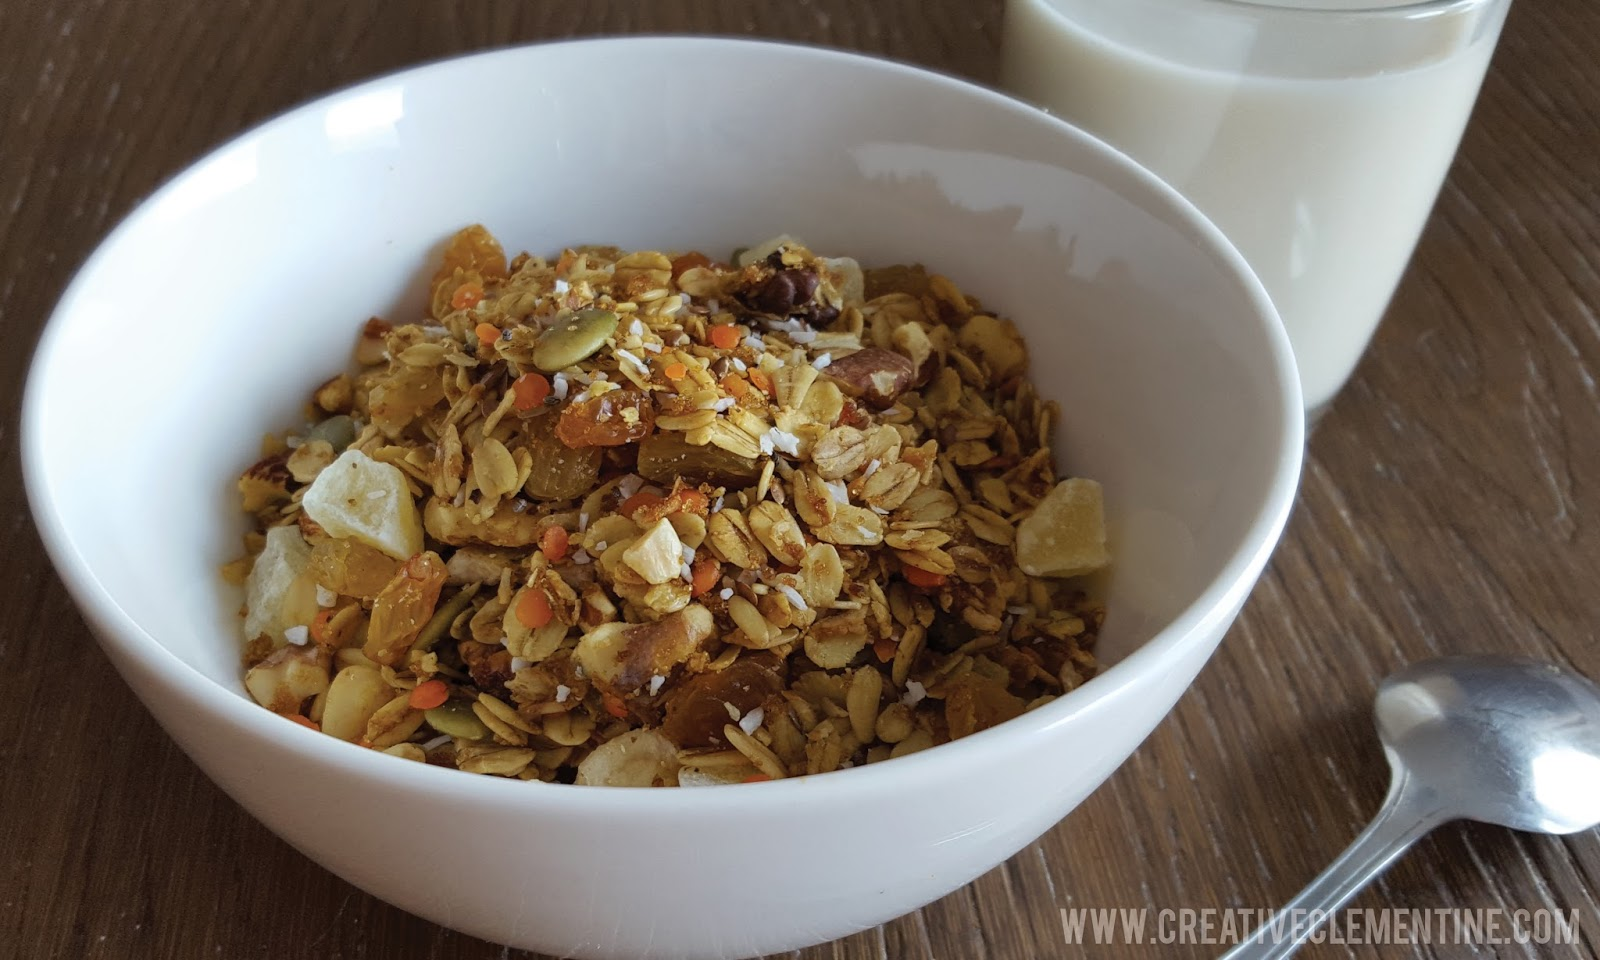 Fully loaded tropical granola recipe with cholesterol friendly ingredients